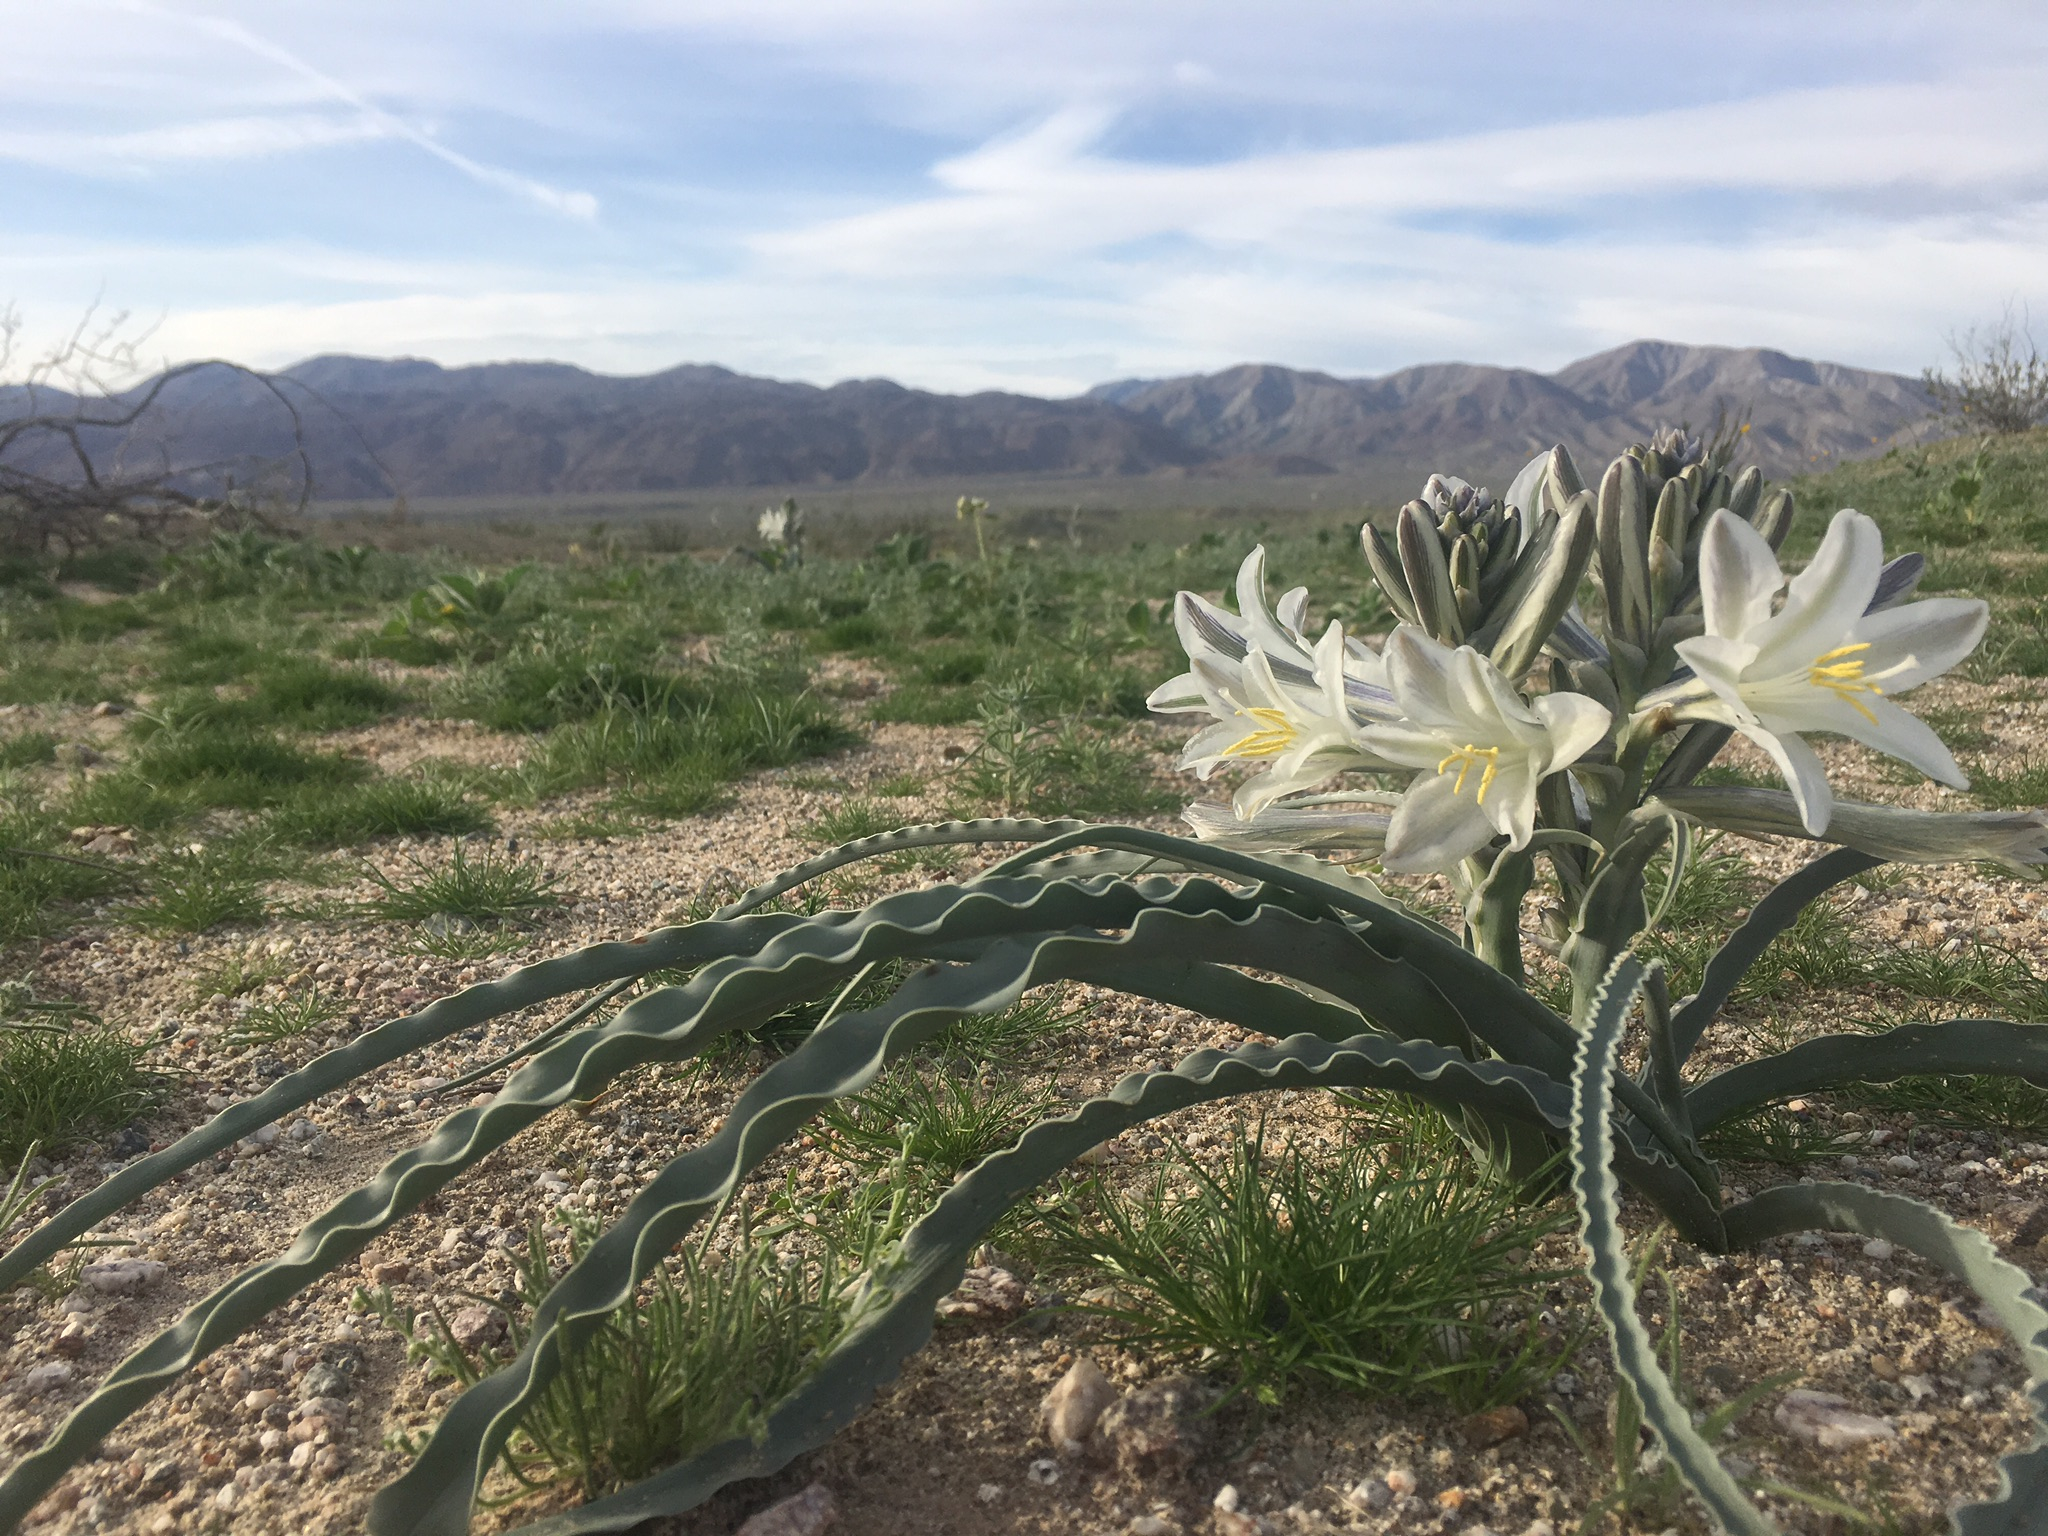 The desert lily (Hesperocallis undulata) emerges through the desert sand after good rainfall. This year there were thousands in bloom in the Anza Borrego Desert, many more than usually seen. Bulbs were waiting, alive under the sand, for a rainy year to reproduce.